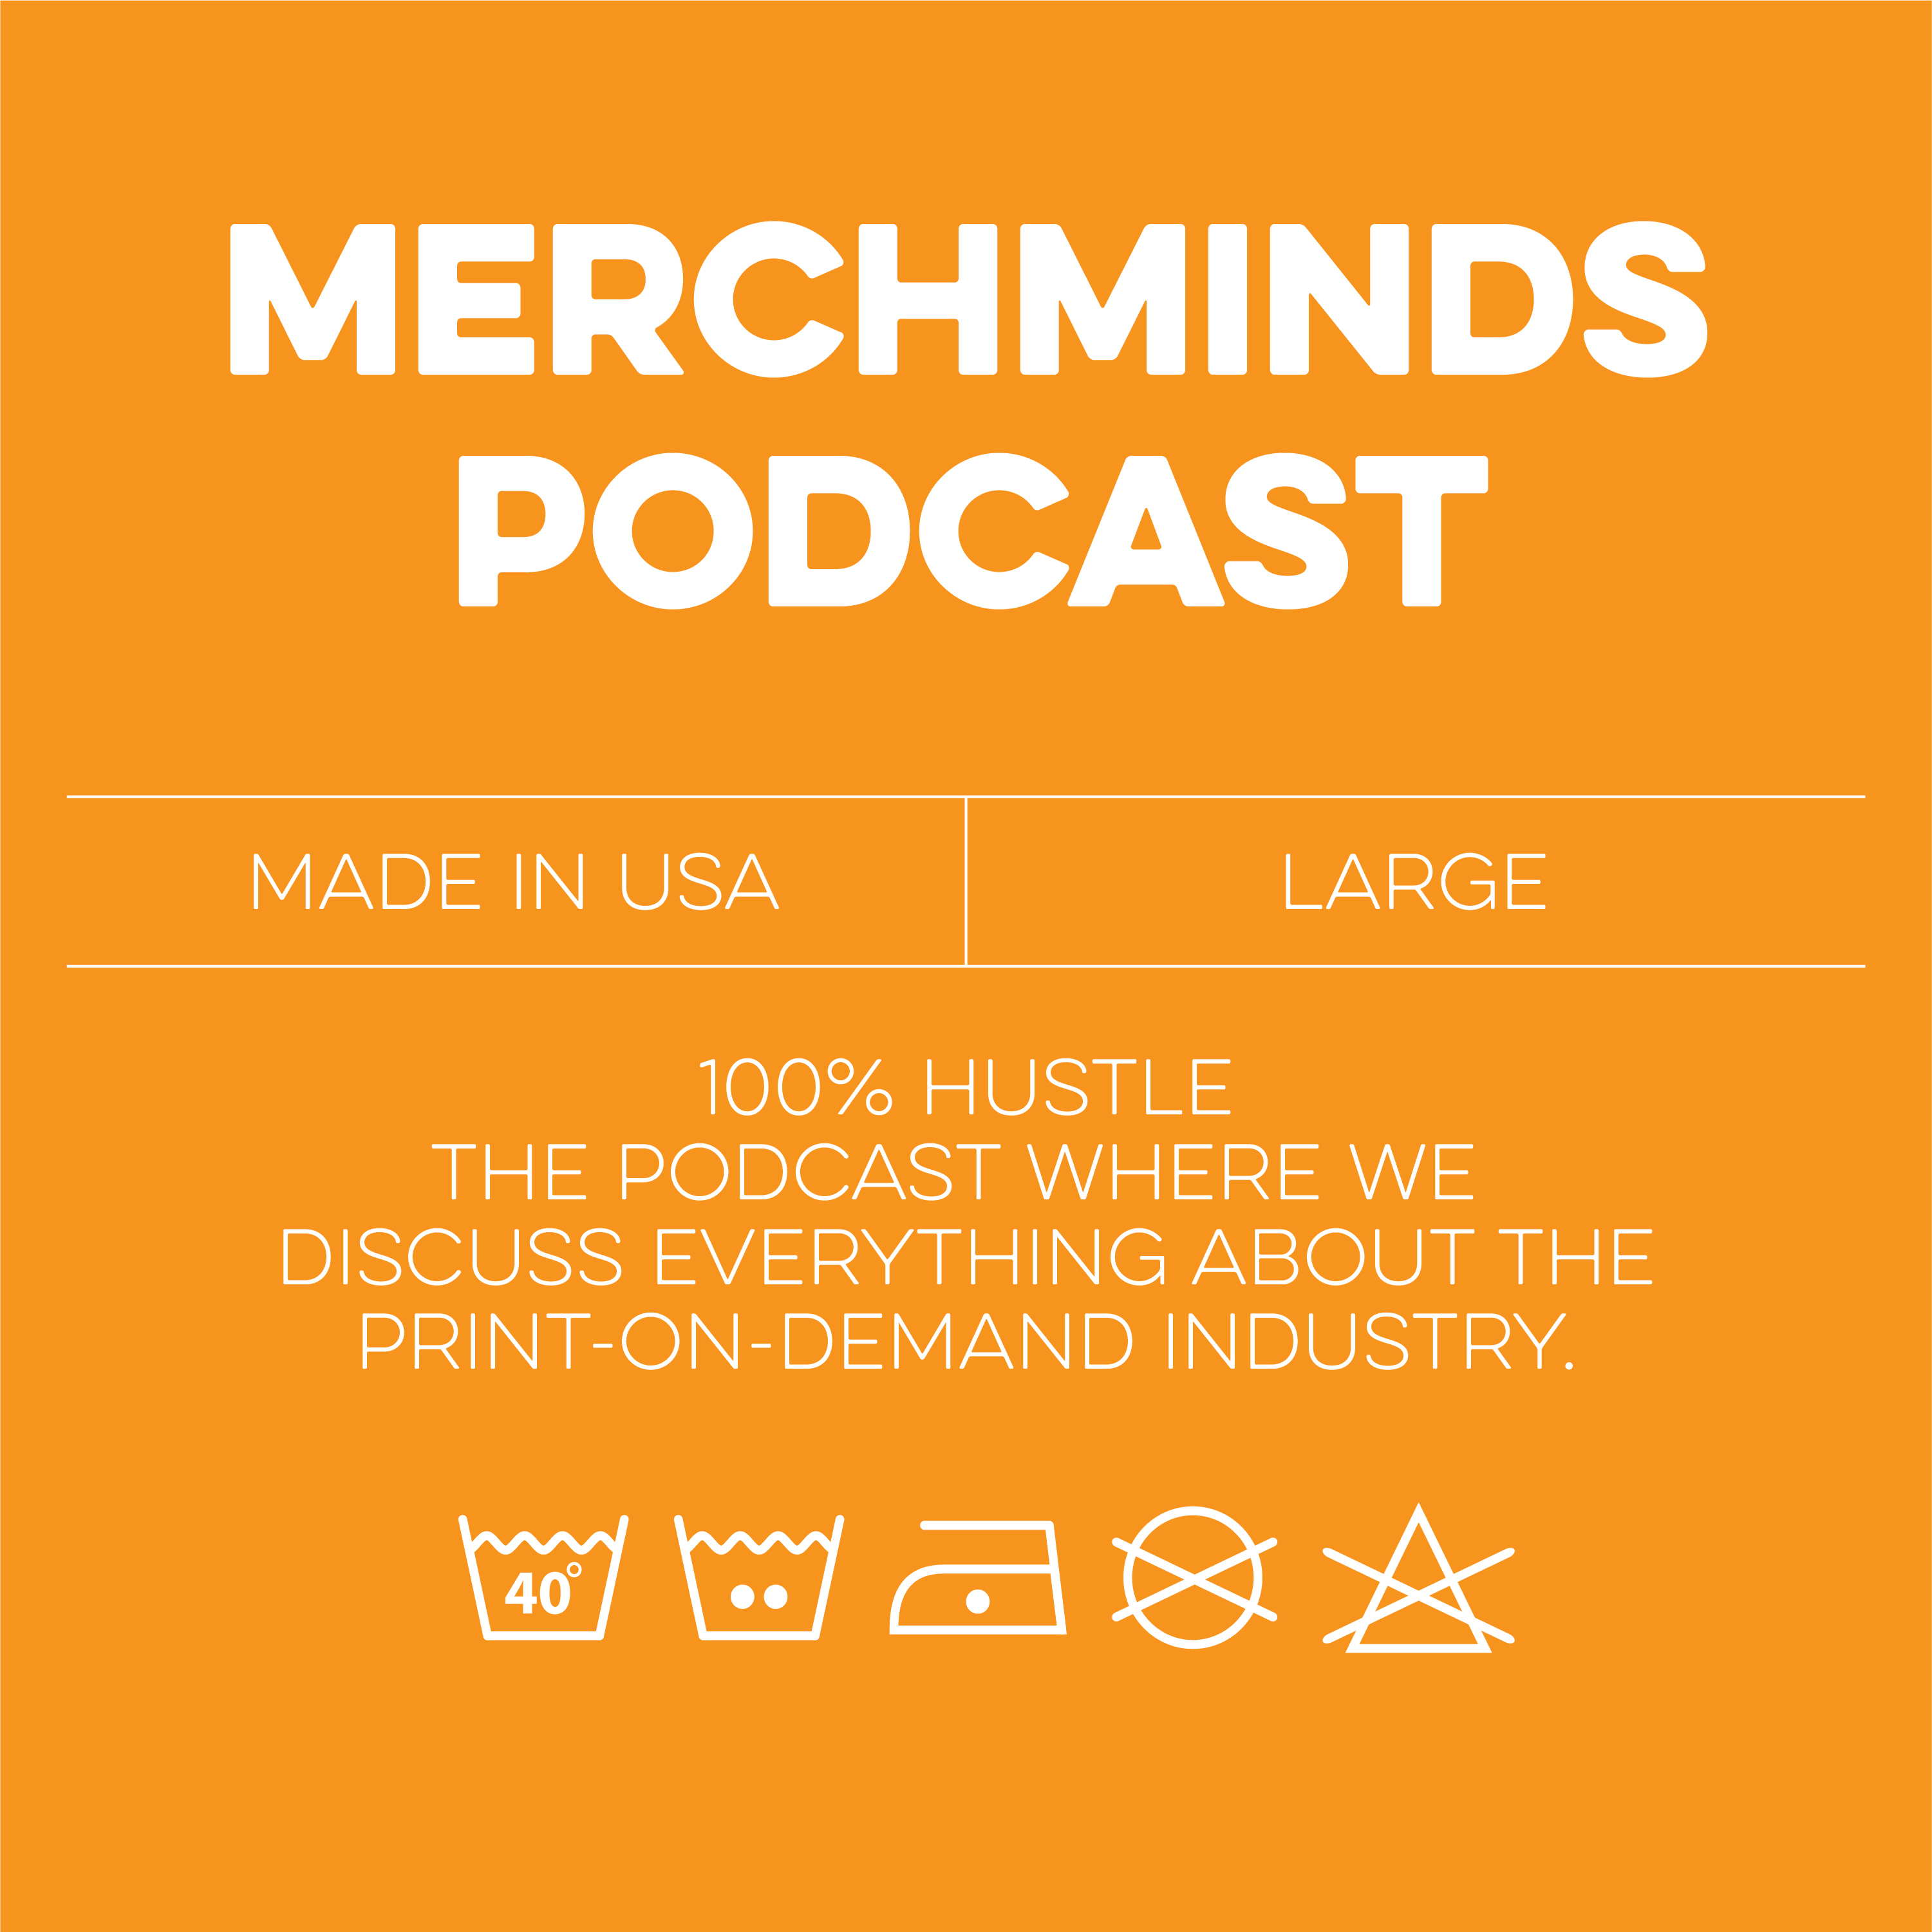 Merch Minds Podcast - Episode 153: Getting Inspired With Eric Patrick Thomas show art